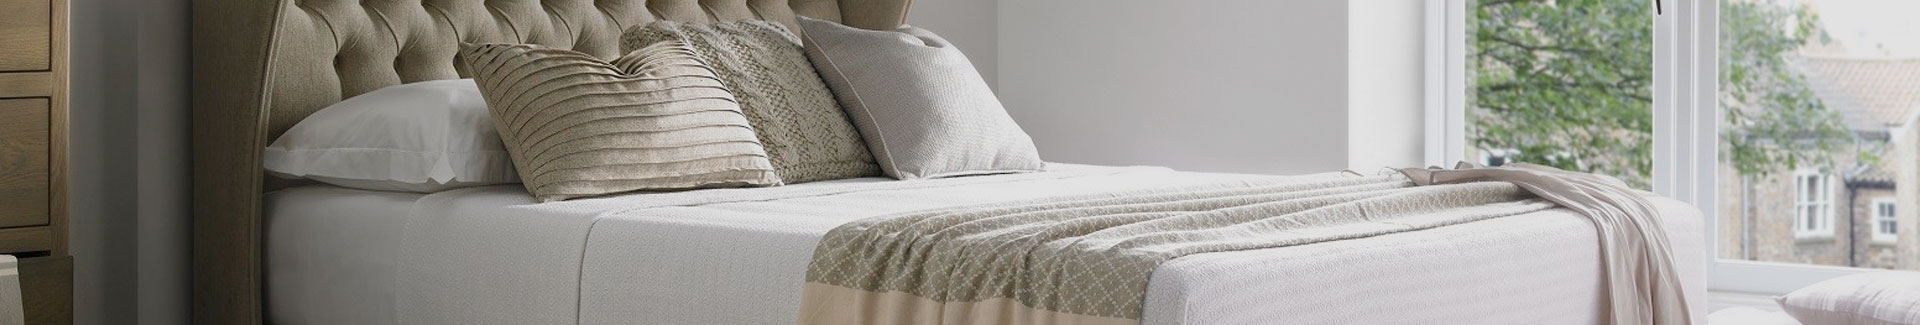 Lakeland Carpets Bed Range